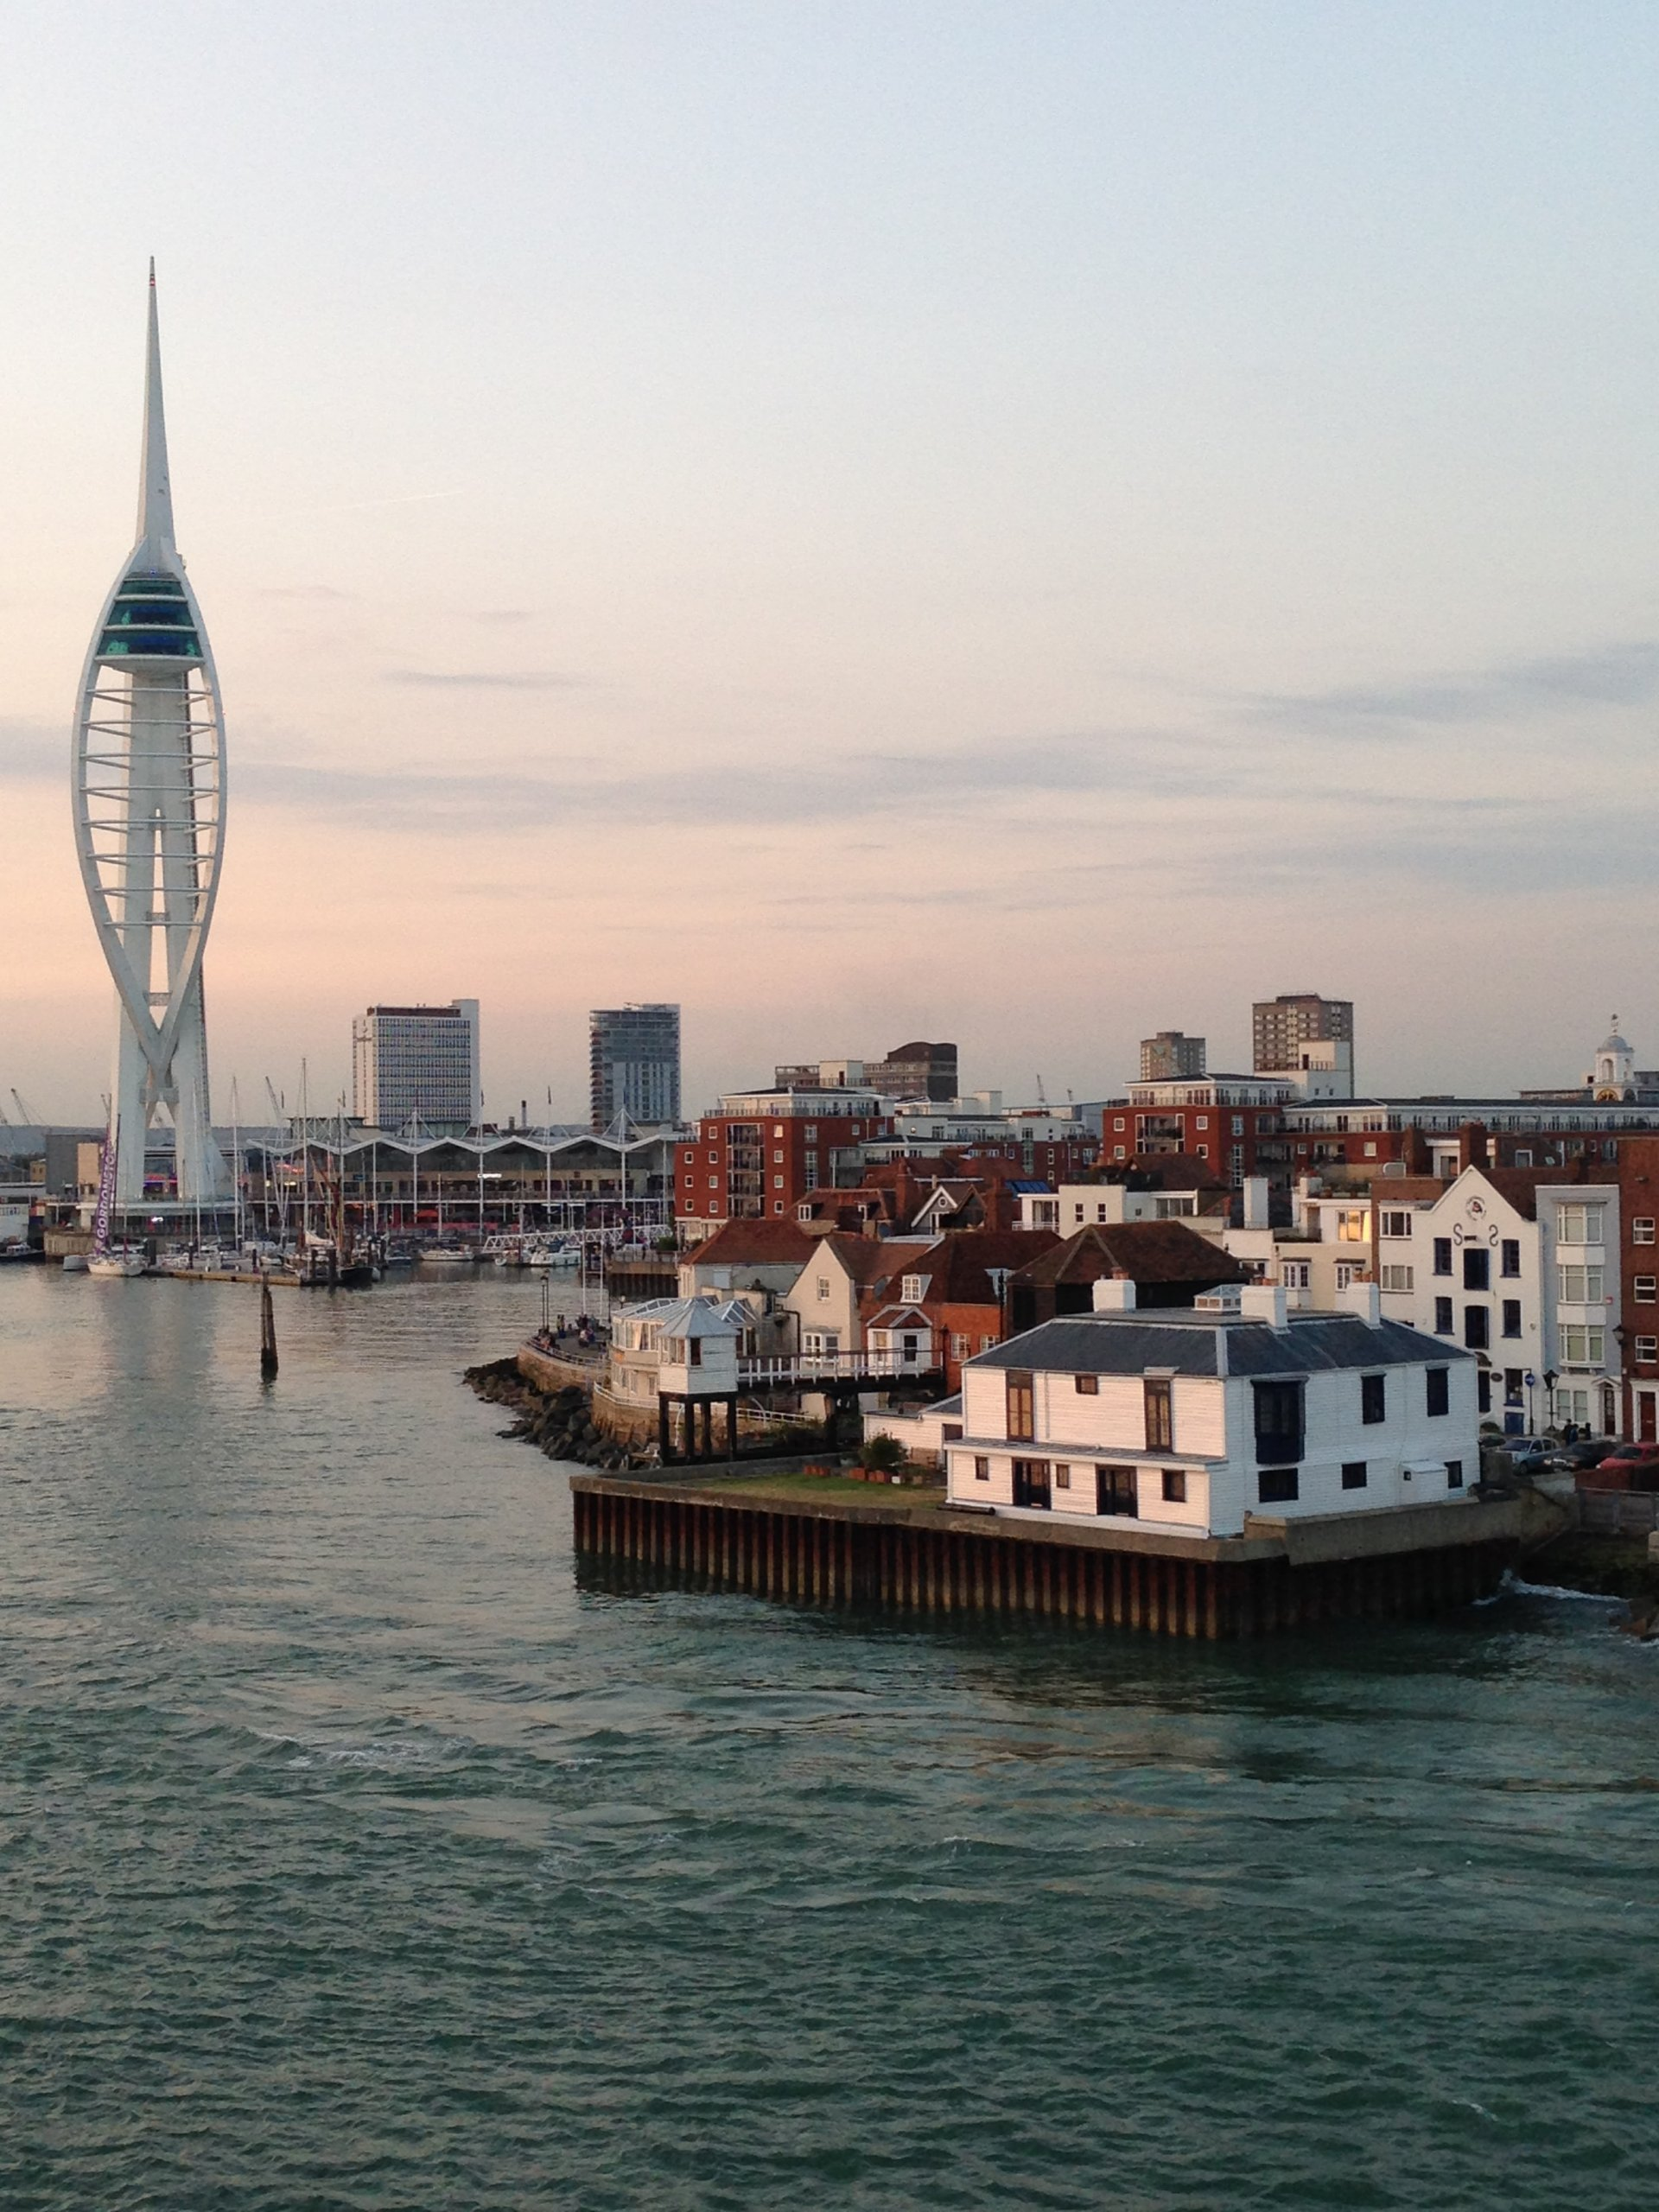 An image of Portsmouth city